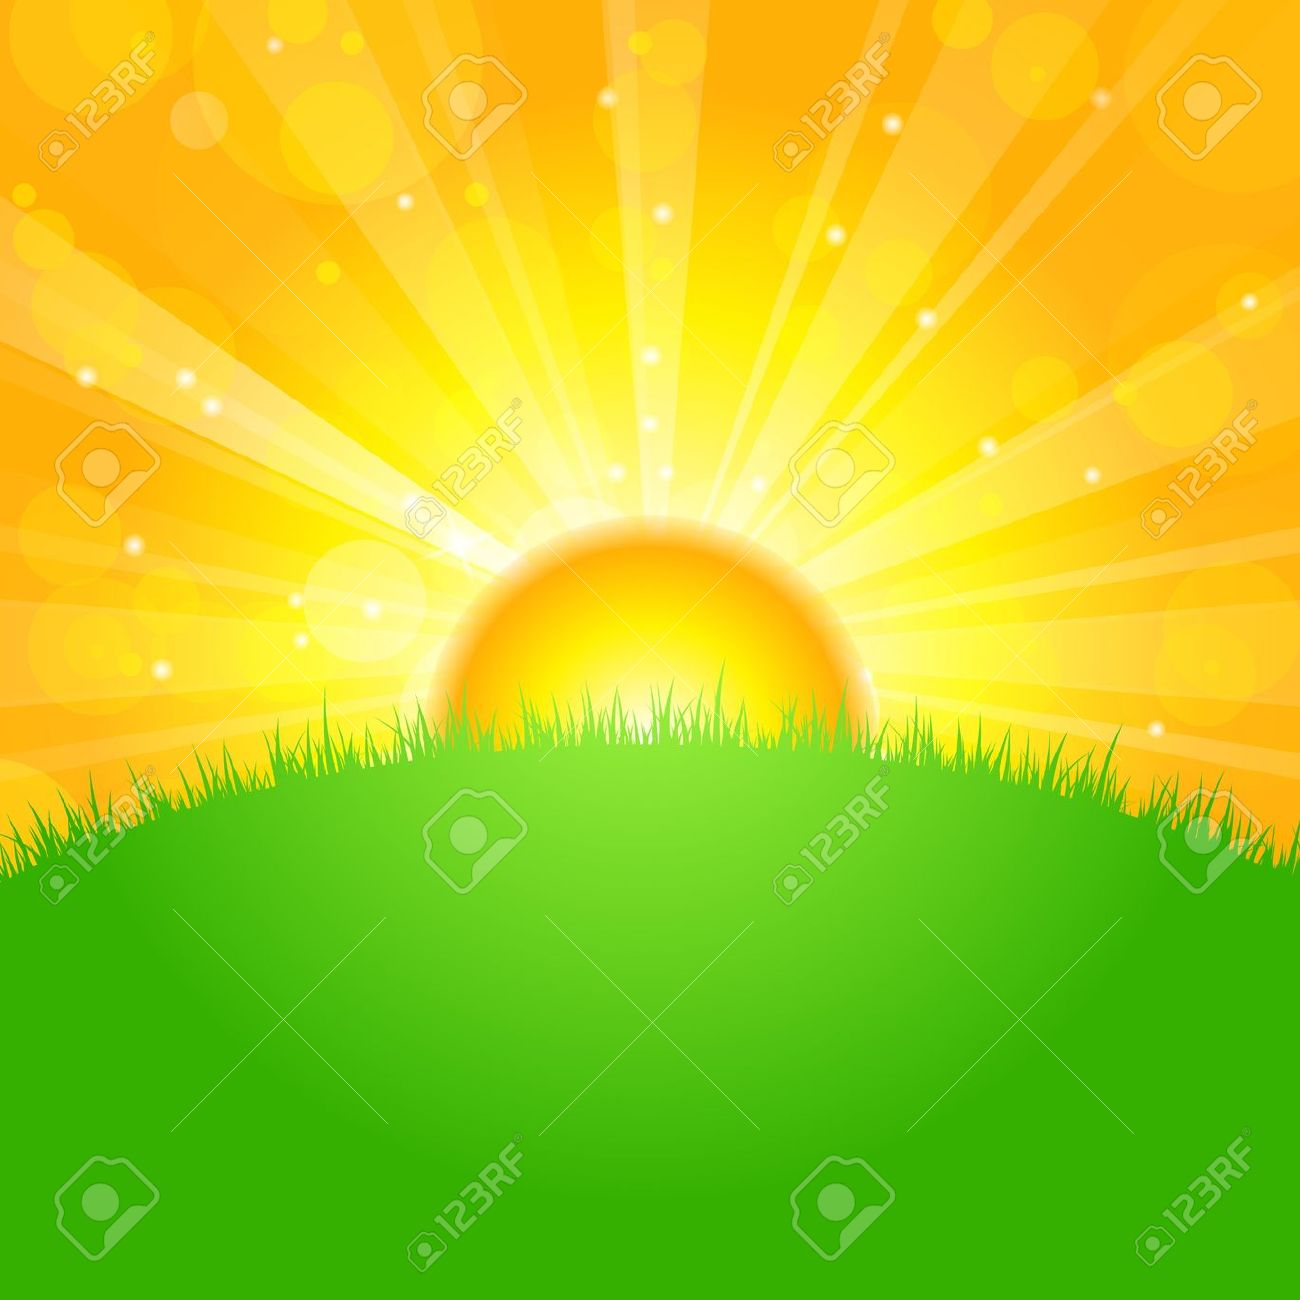 Early morning sun rise clipart - Clipground